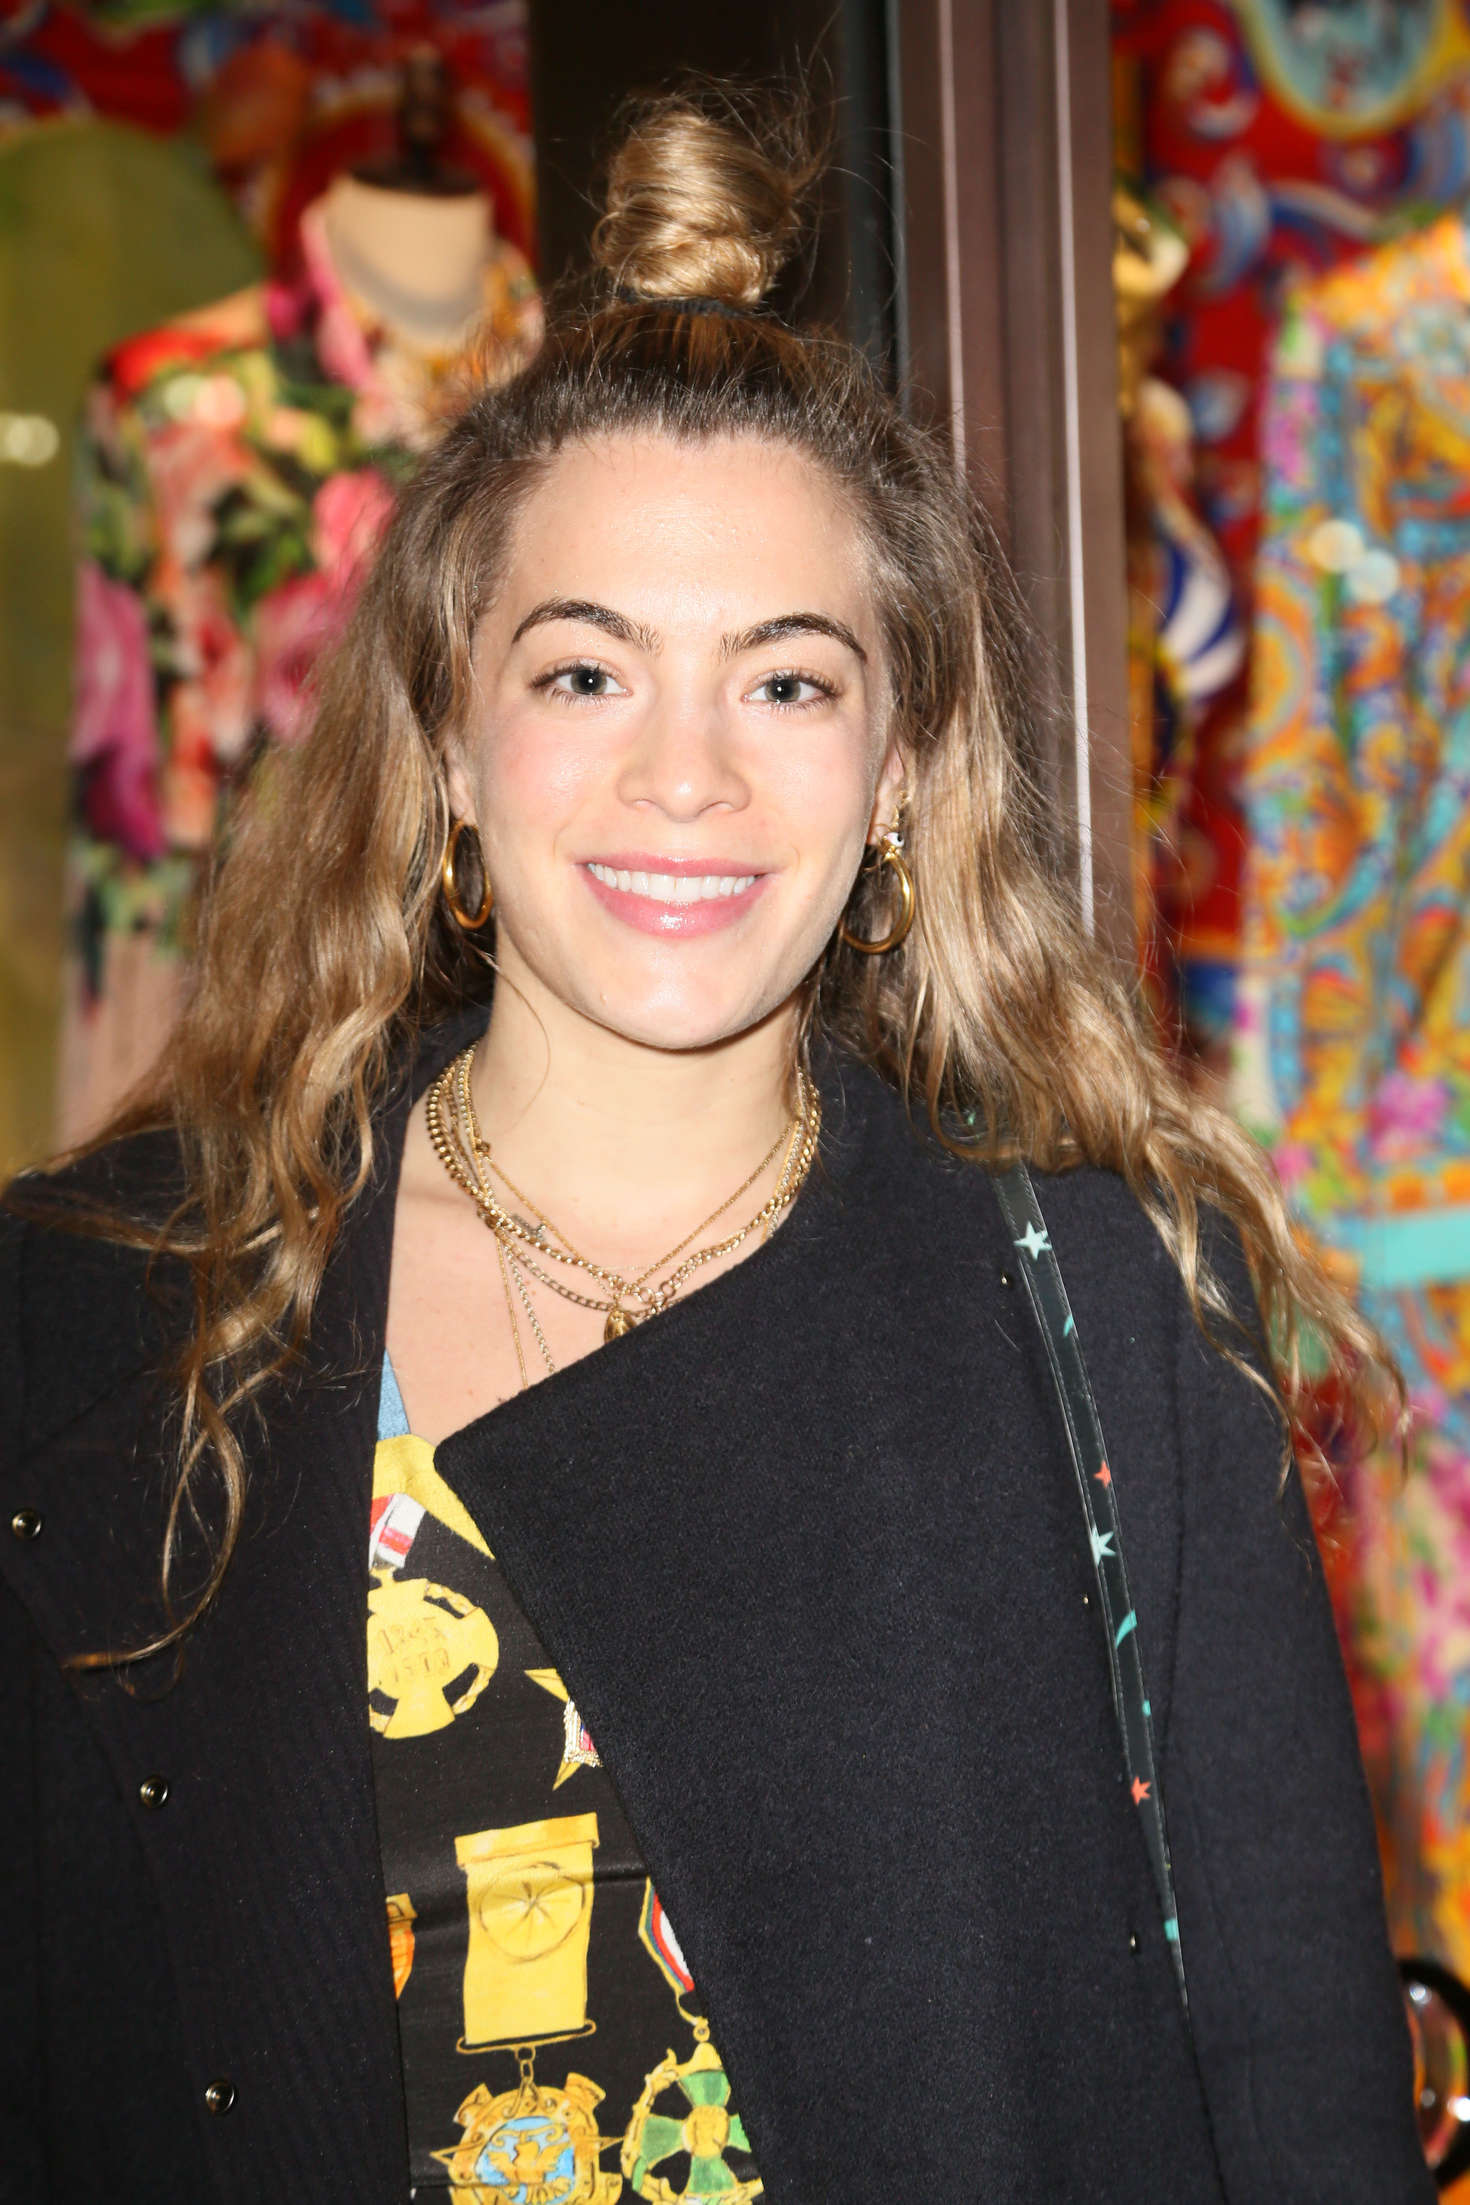 Chelsea Leyland The Dolce and Gabbana Pyjama Party in New York